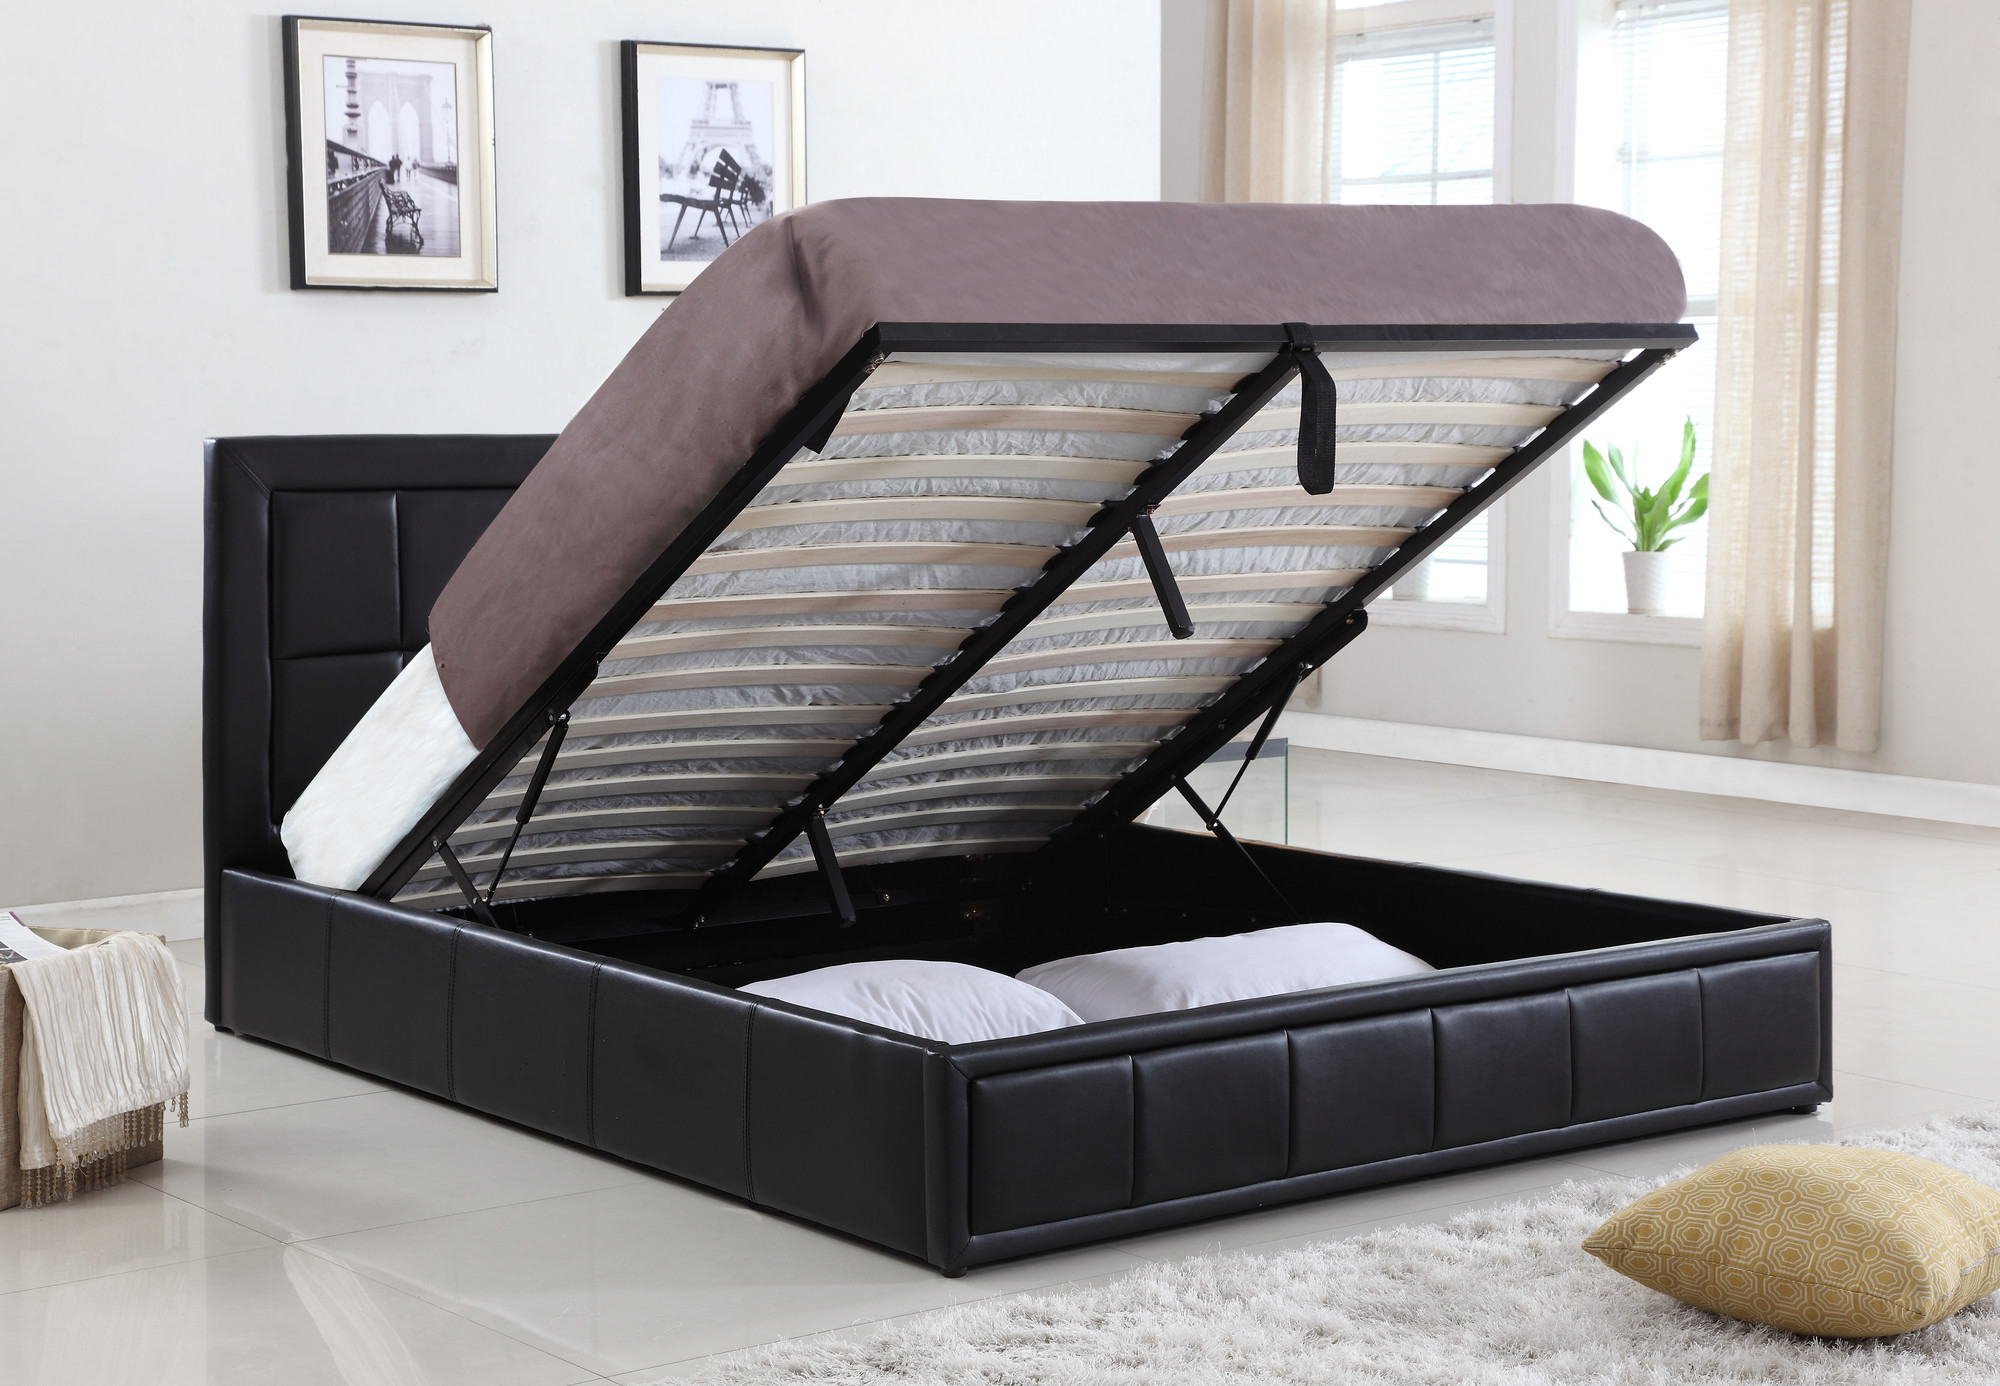 Gas Lift Storage Bed Frame New Pu Leather Queen Size Gas Lift Storage Bed Ebay